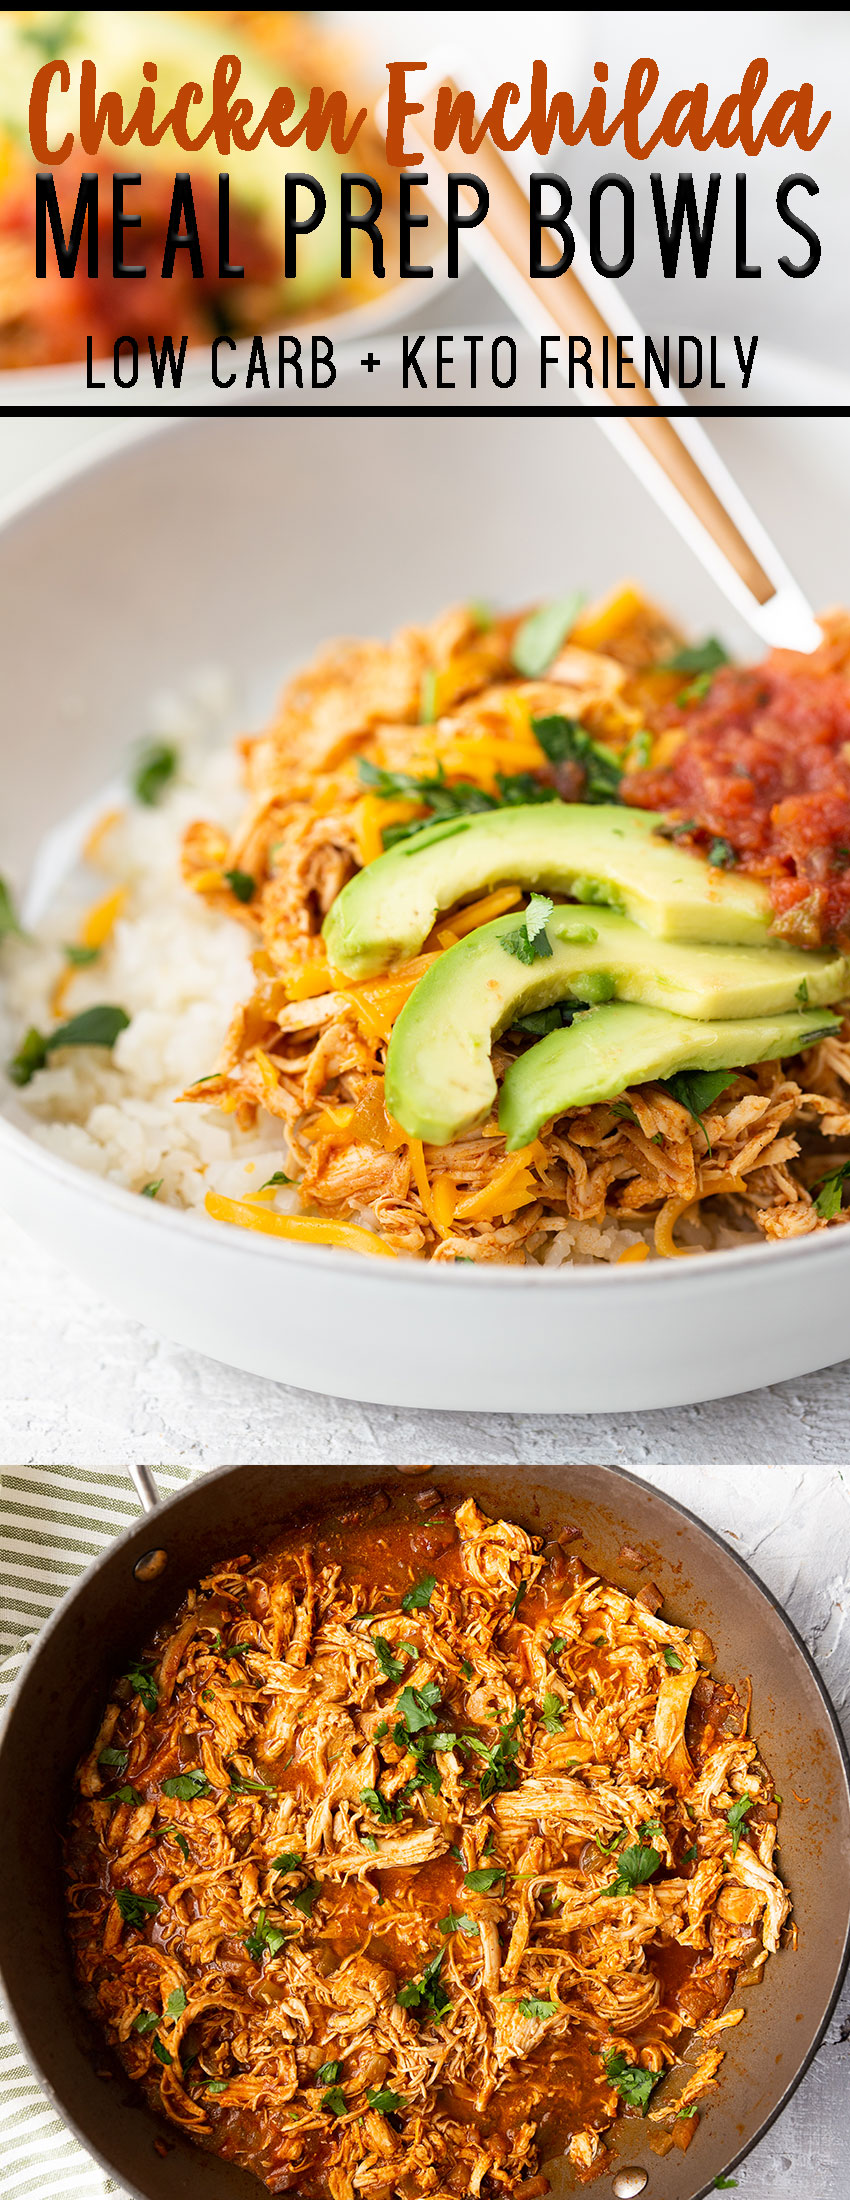 Chicken enchilada bowls--A keto friendly, low carb meal option for chicken enchiladas